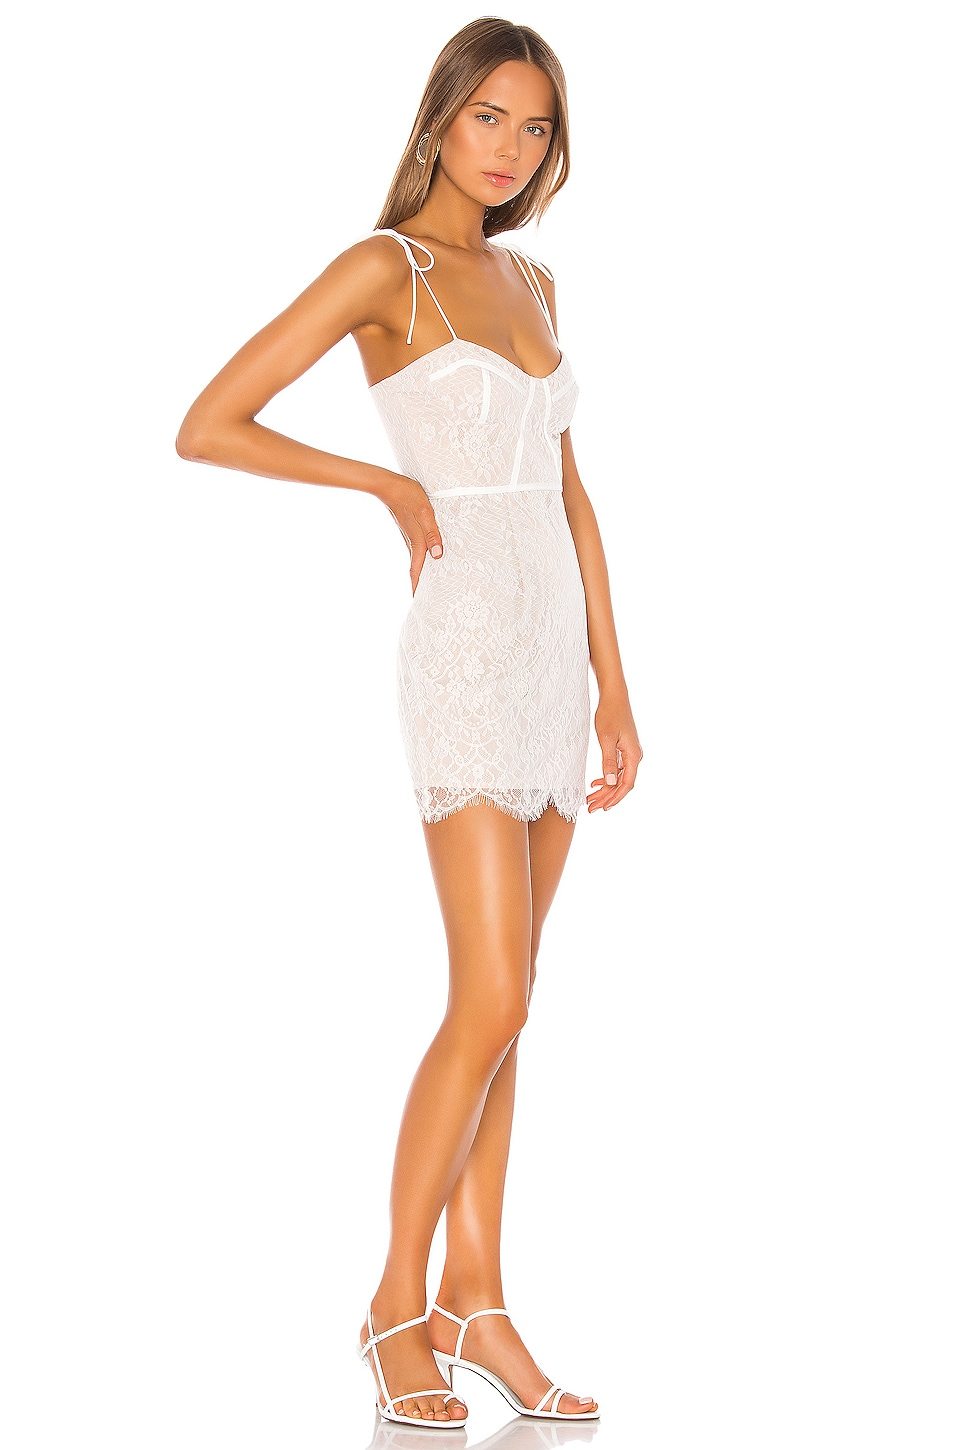 Lottie Lace Bustier Dress, view 2, click to view large image.